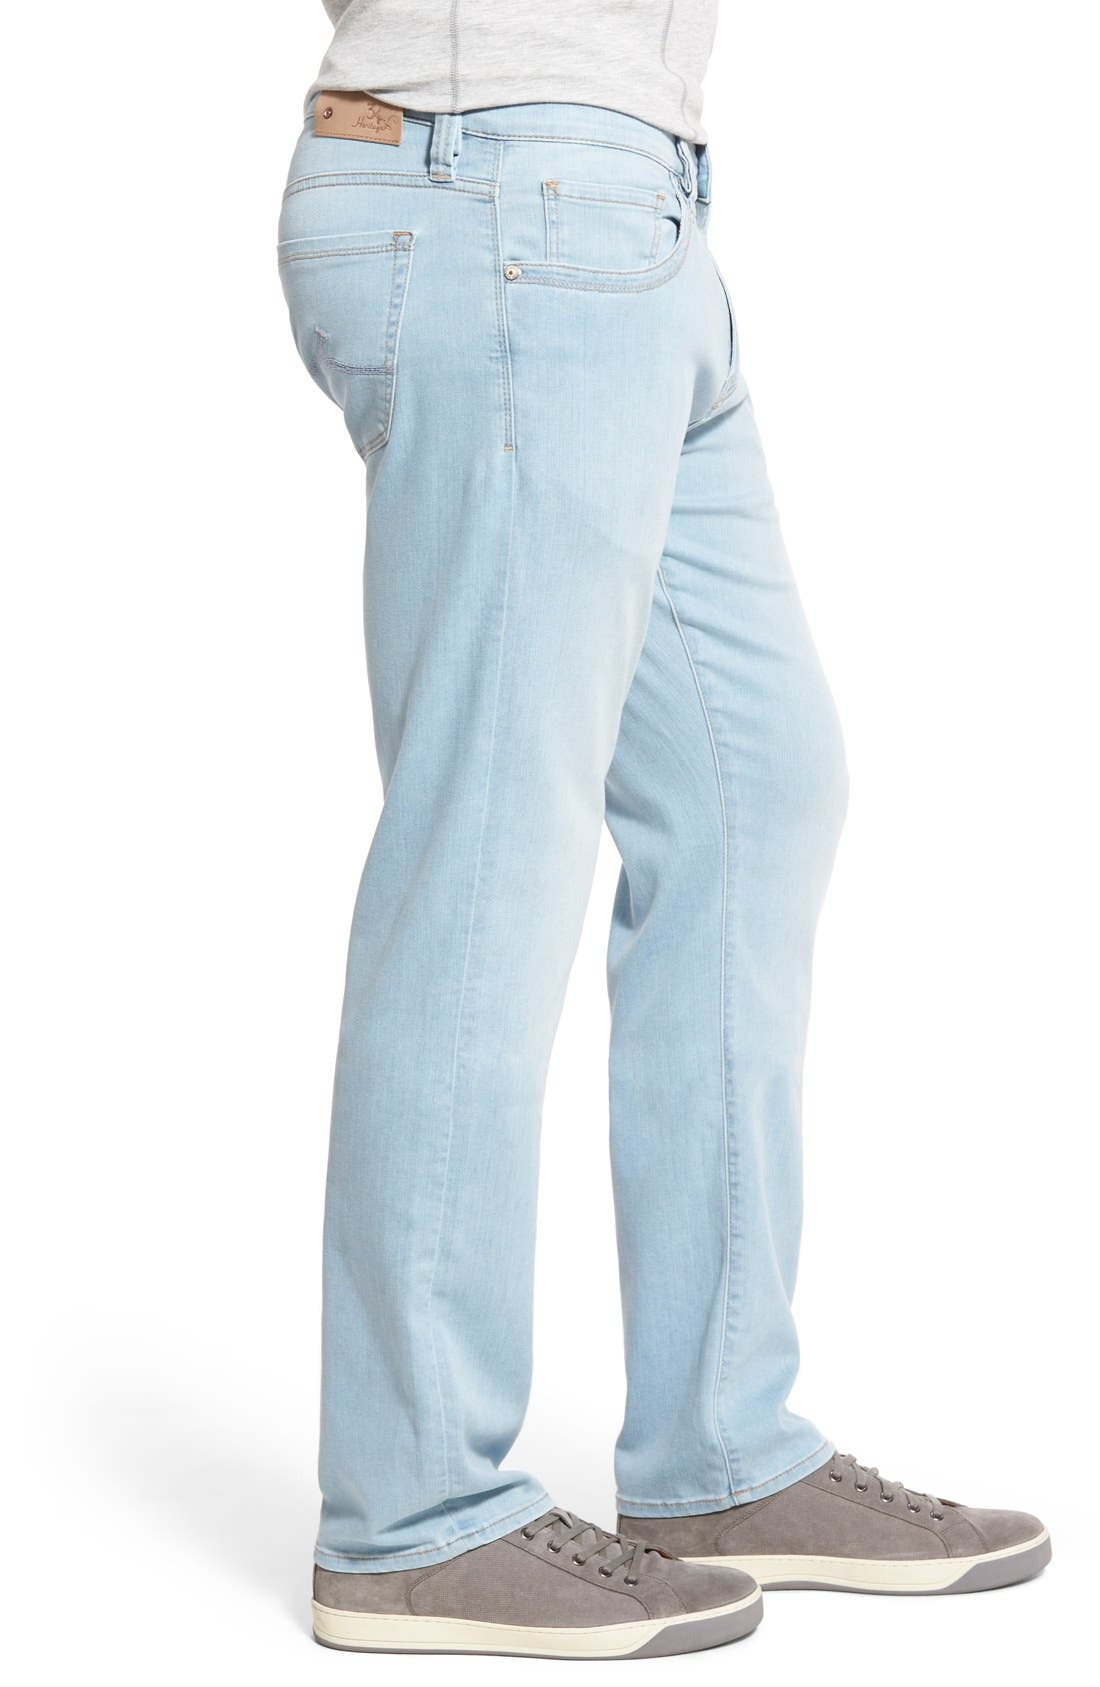 'Charisma' Relaxed Fit Jeans,                             Alternate thumbnail 3, color,                             Bleach Hawaii